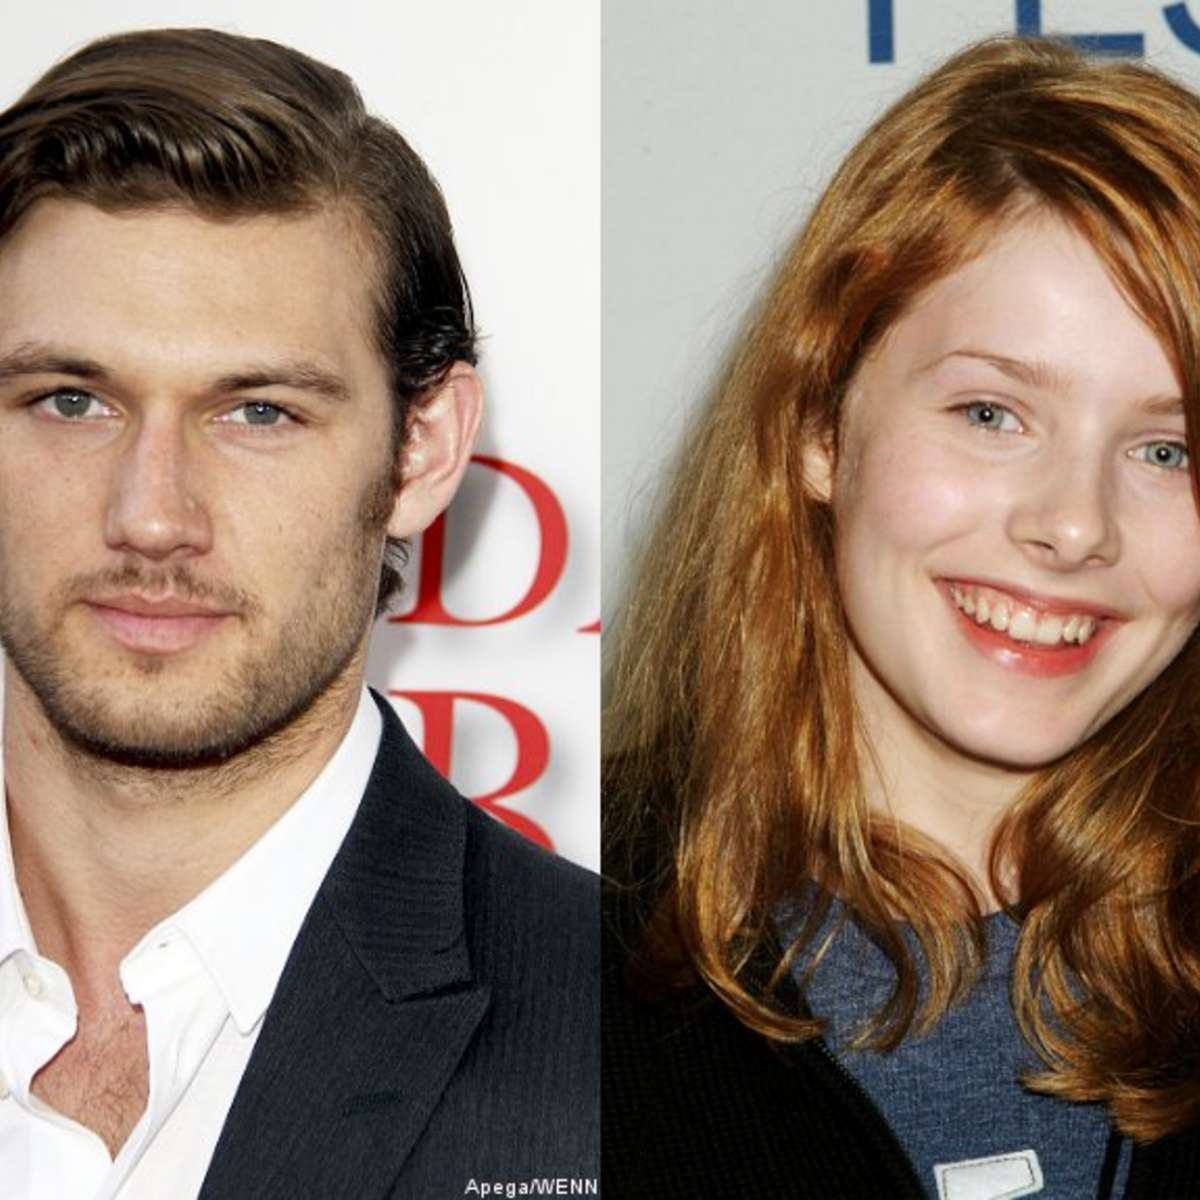 alex-pettyfer-and-rachel-hurd-wood-audition-for-star-wars-episode-7-roles.jpg